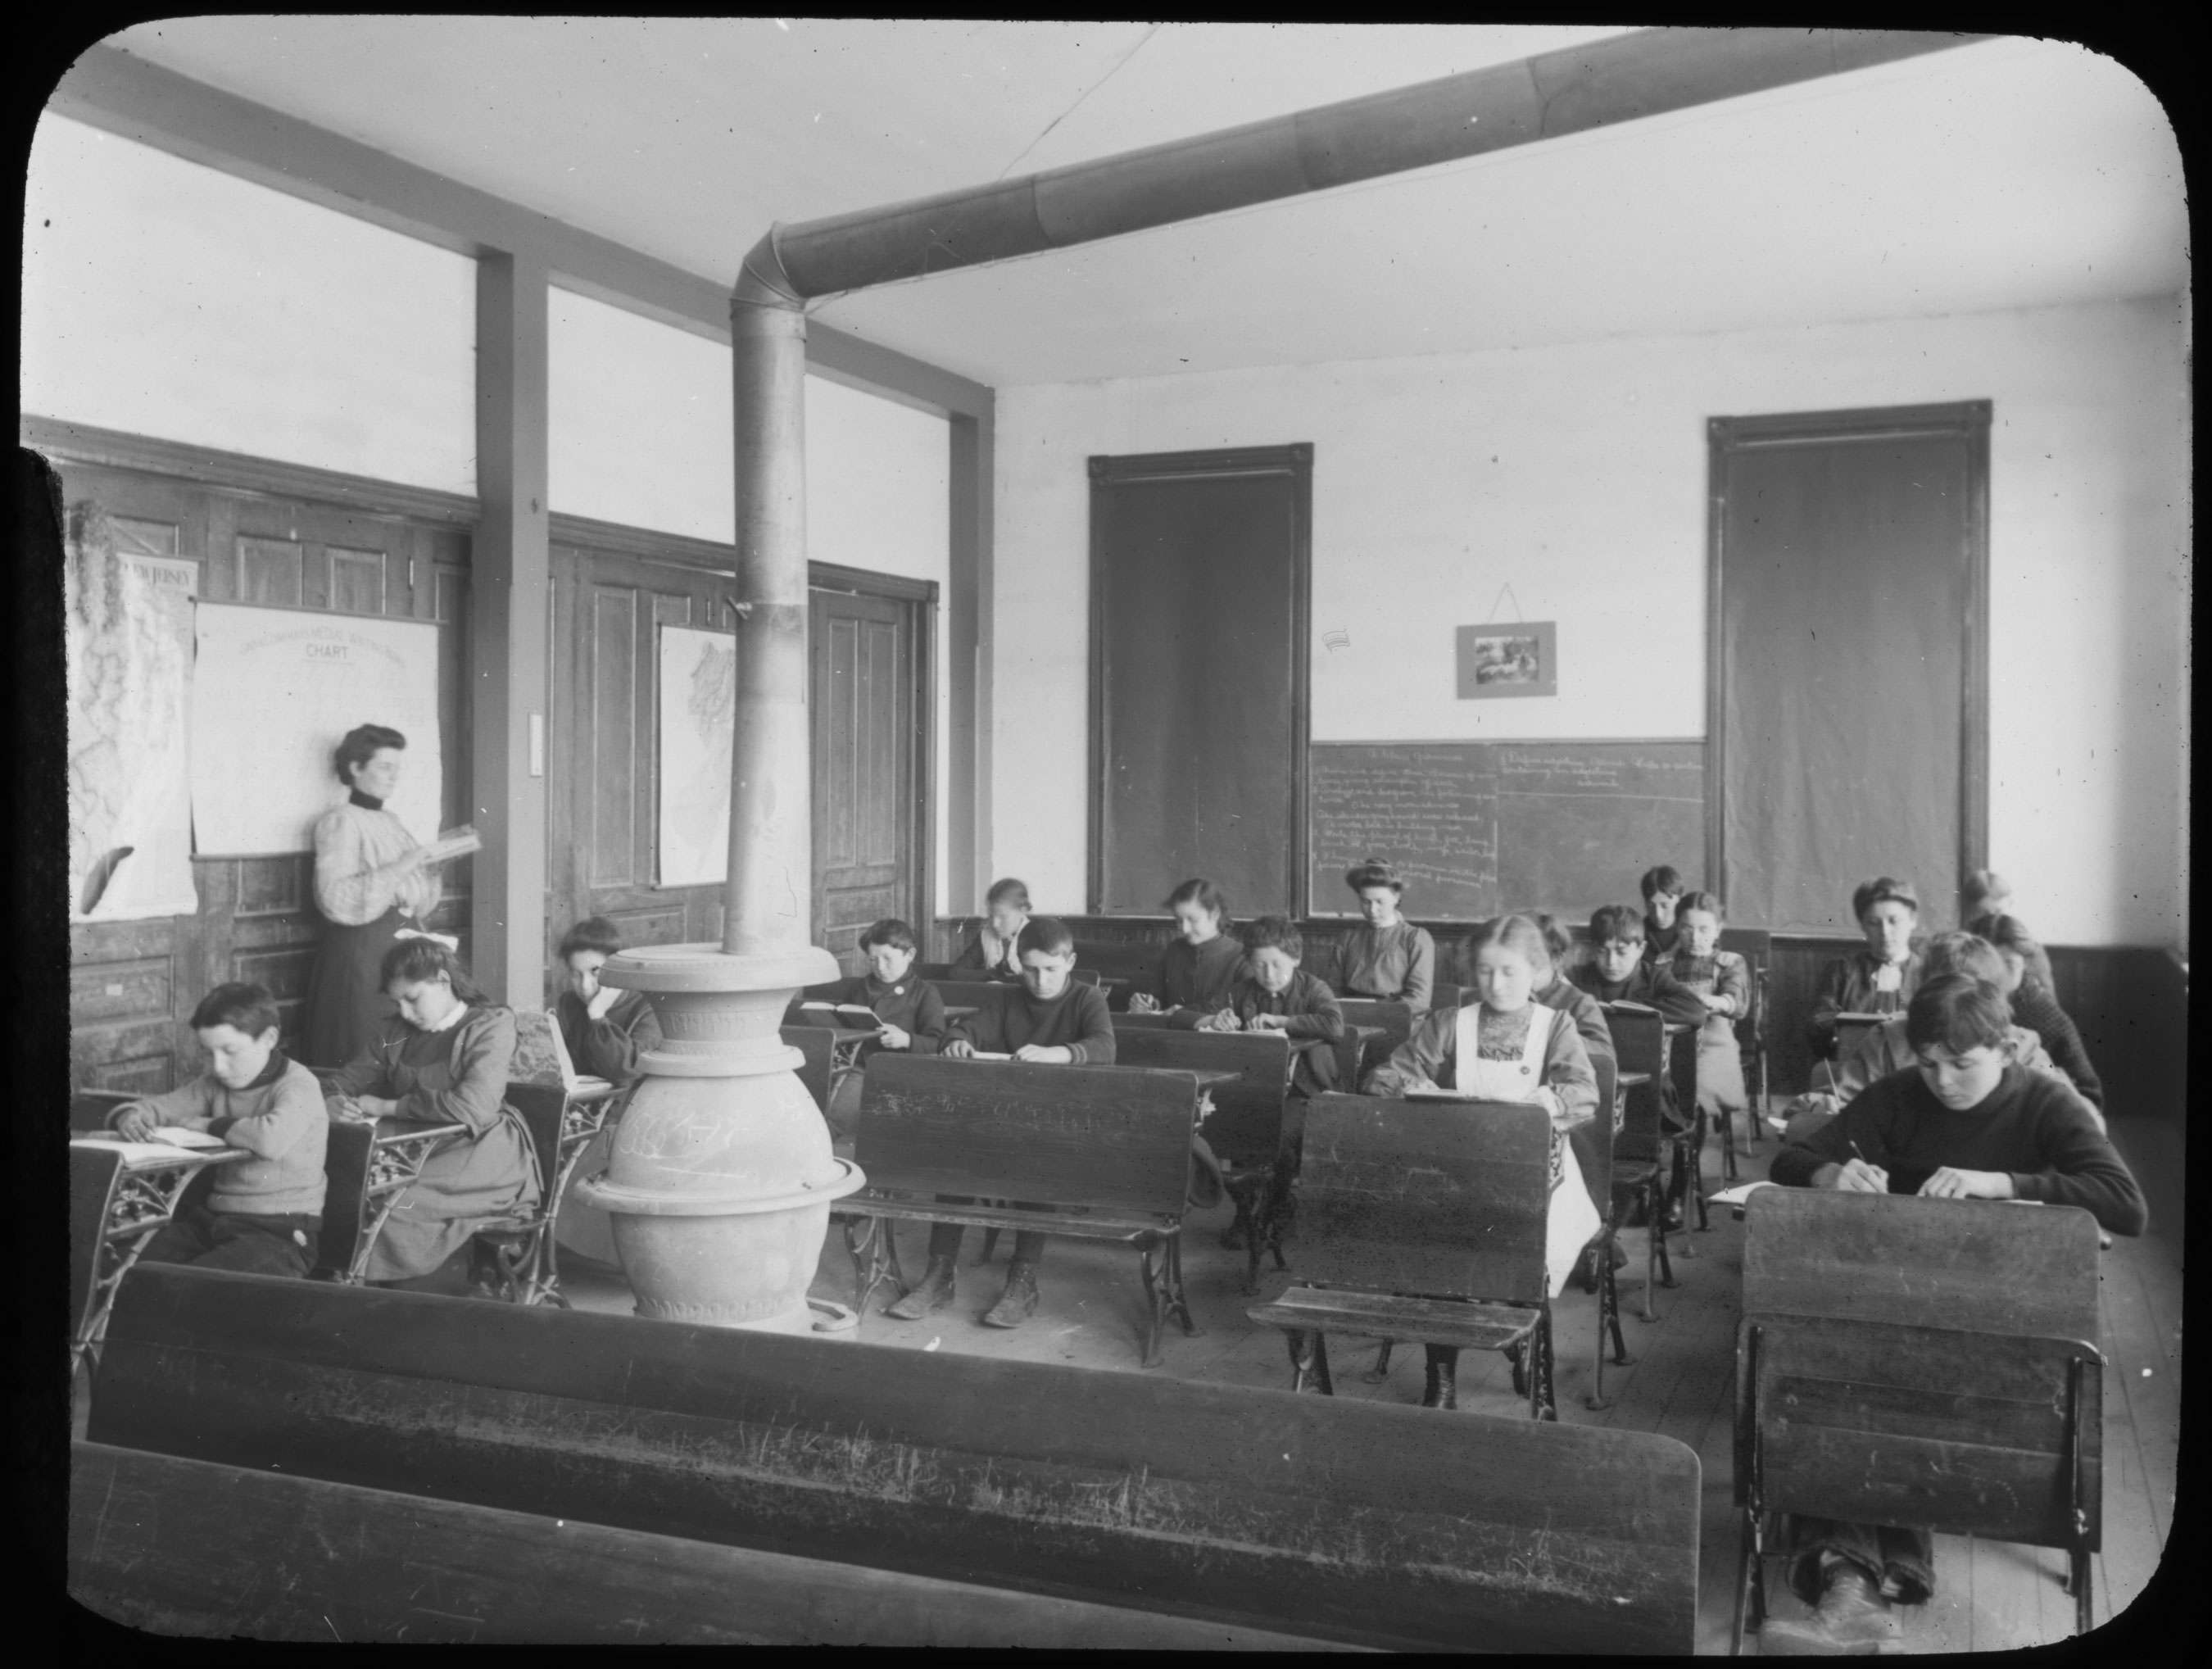 School room in Woodbine, New Jersey, ca. 1900. Courtesy of American Jewish Historical Society